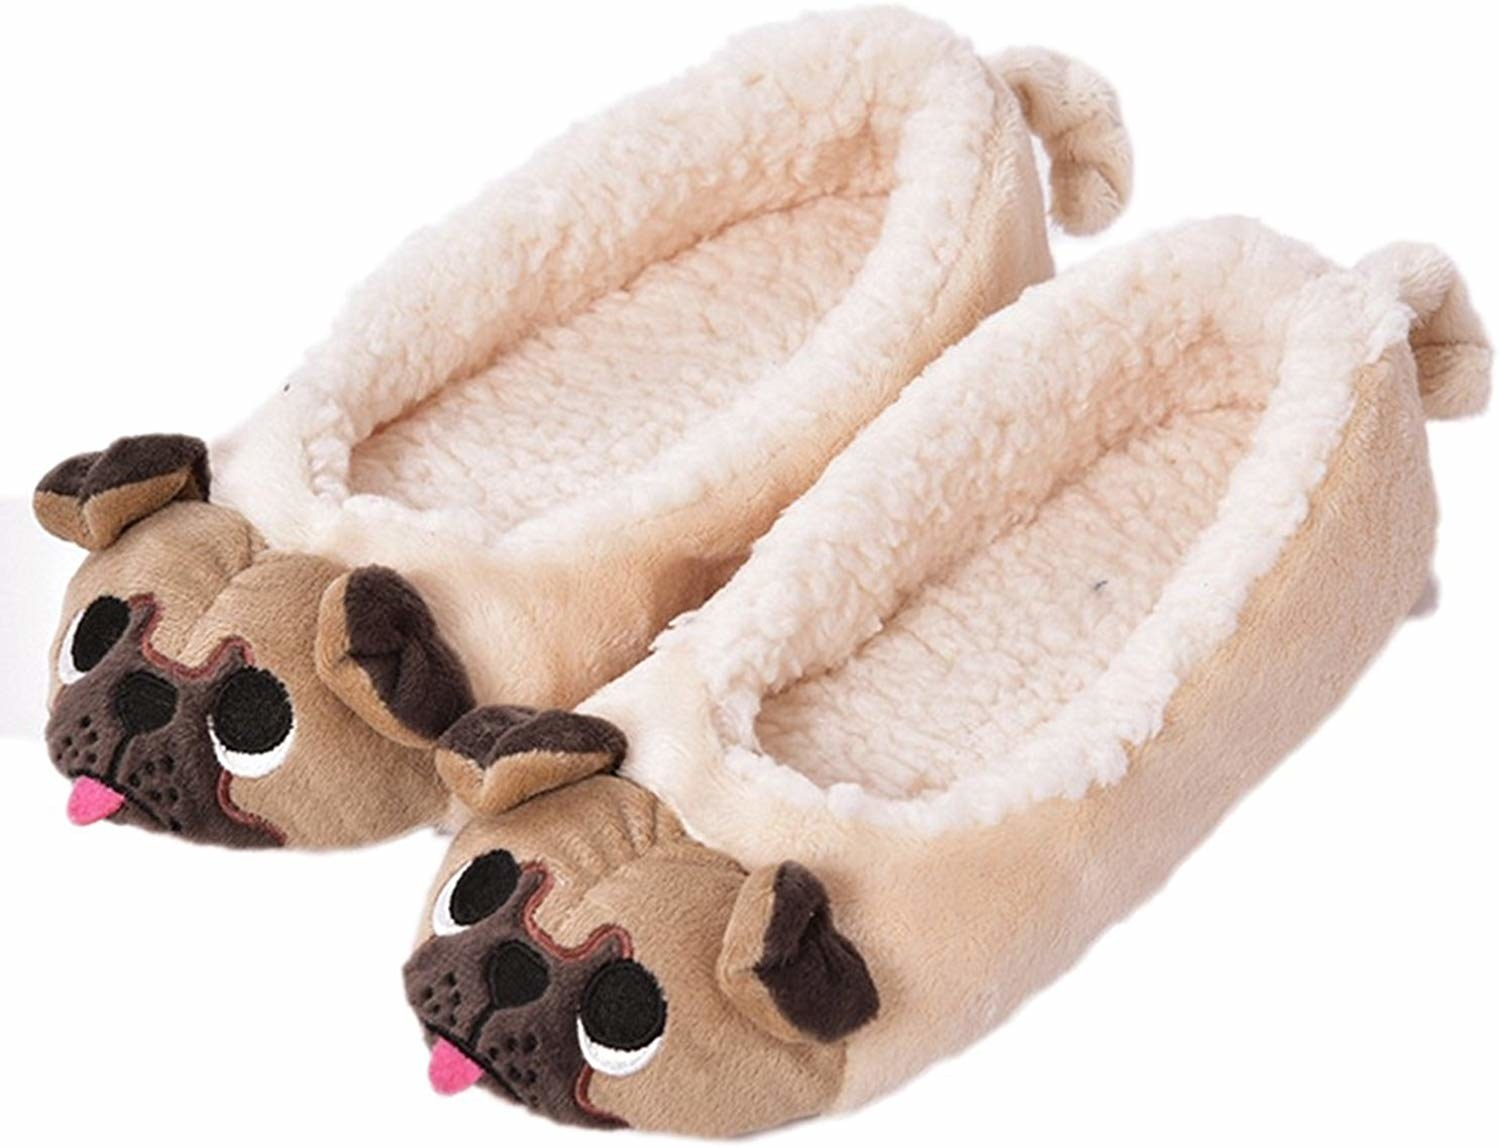 The low slippers with pug faces at the front with little tongues sticking out